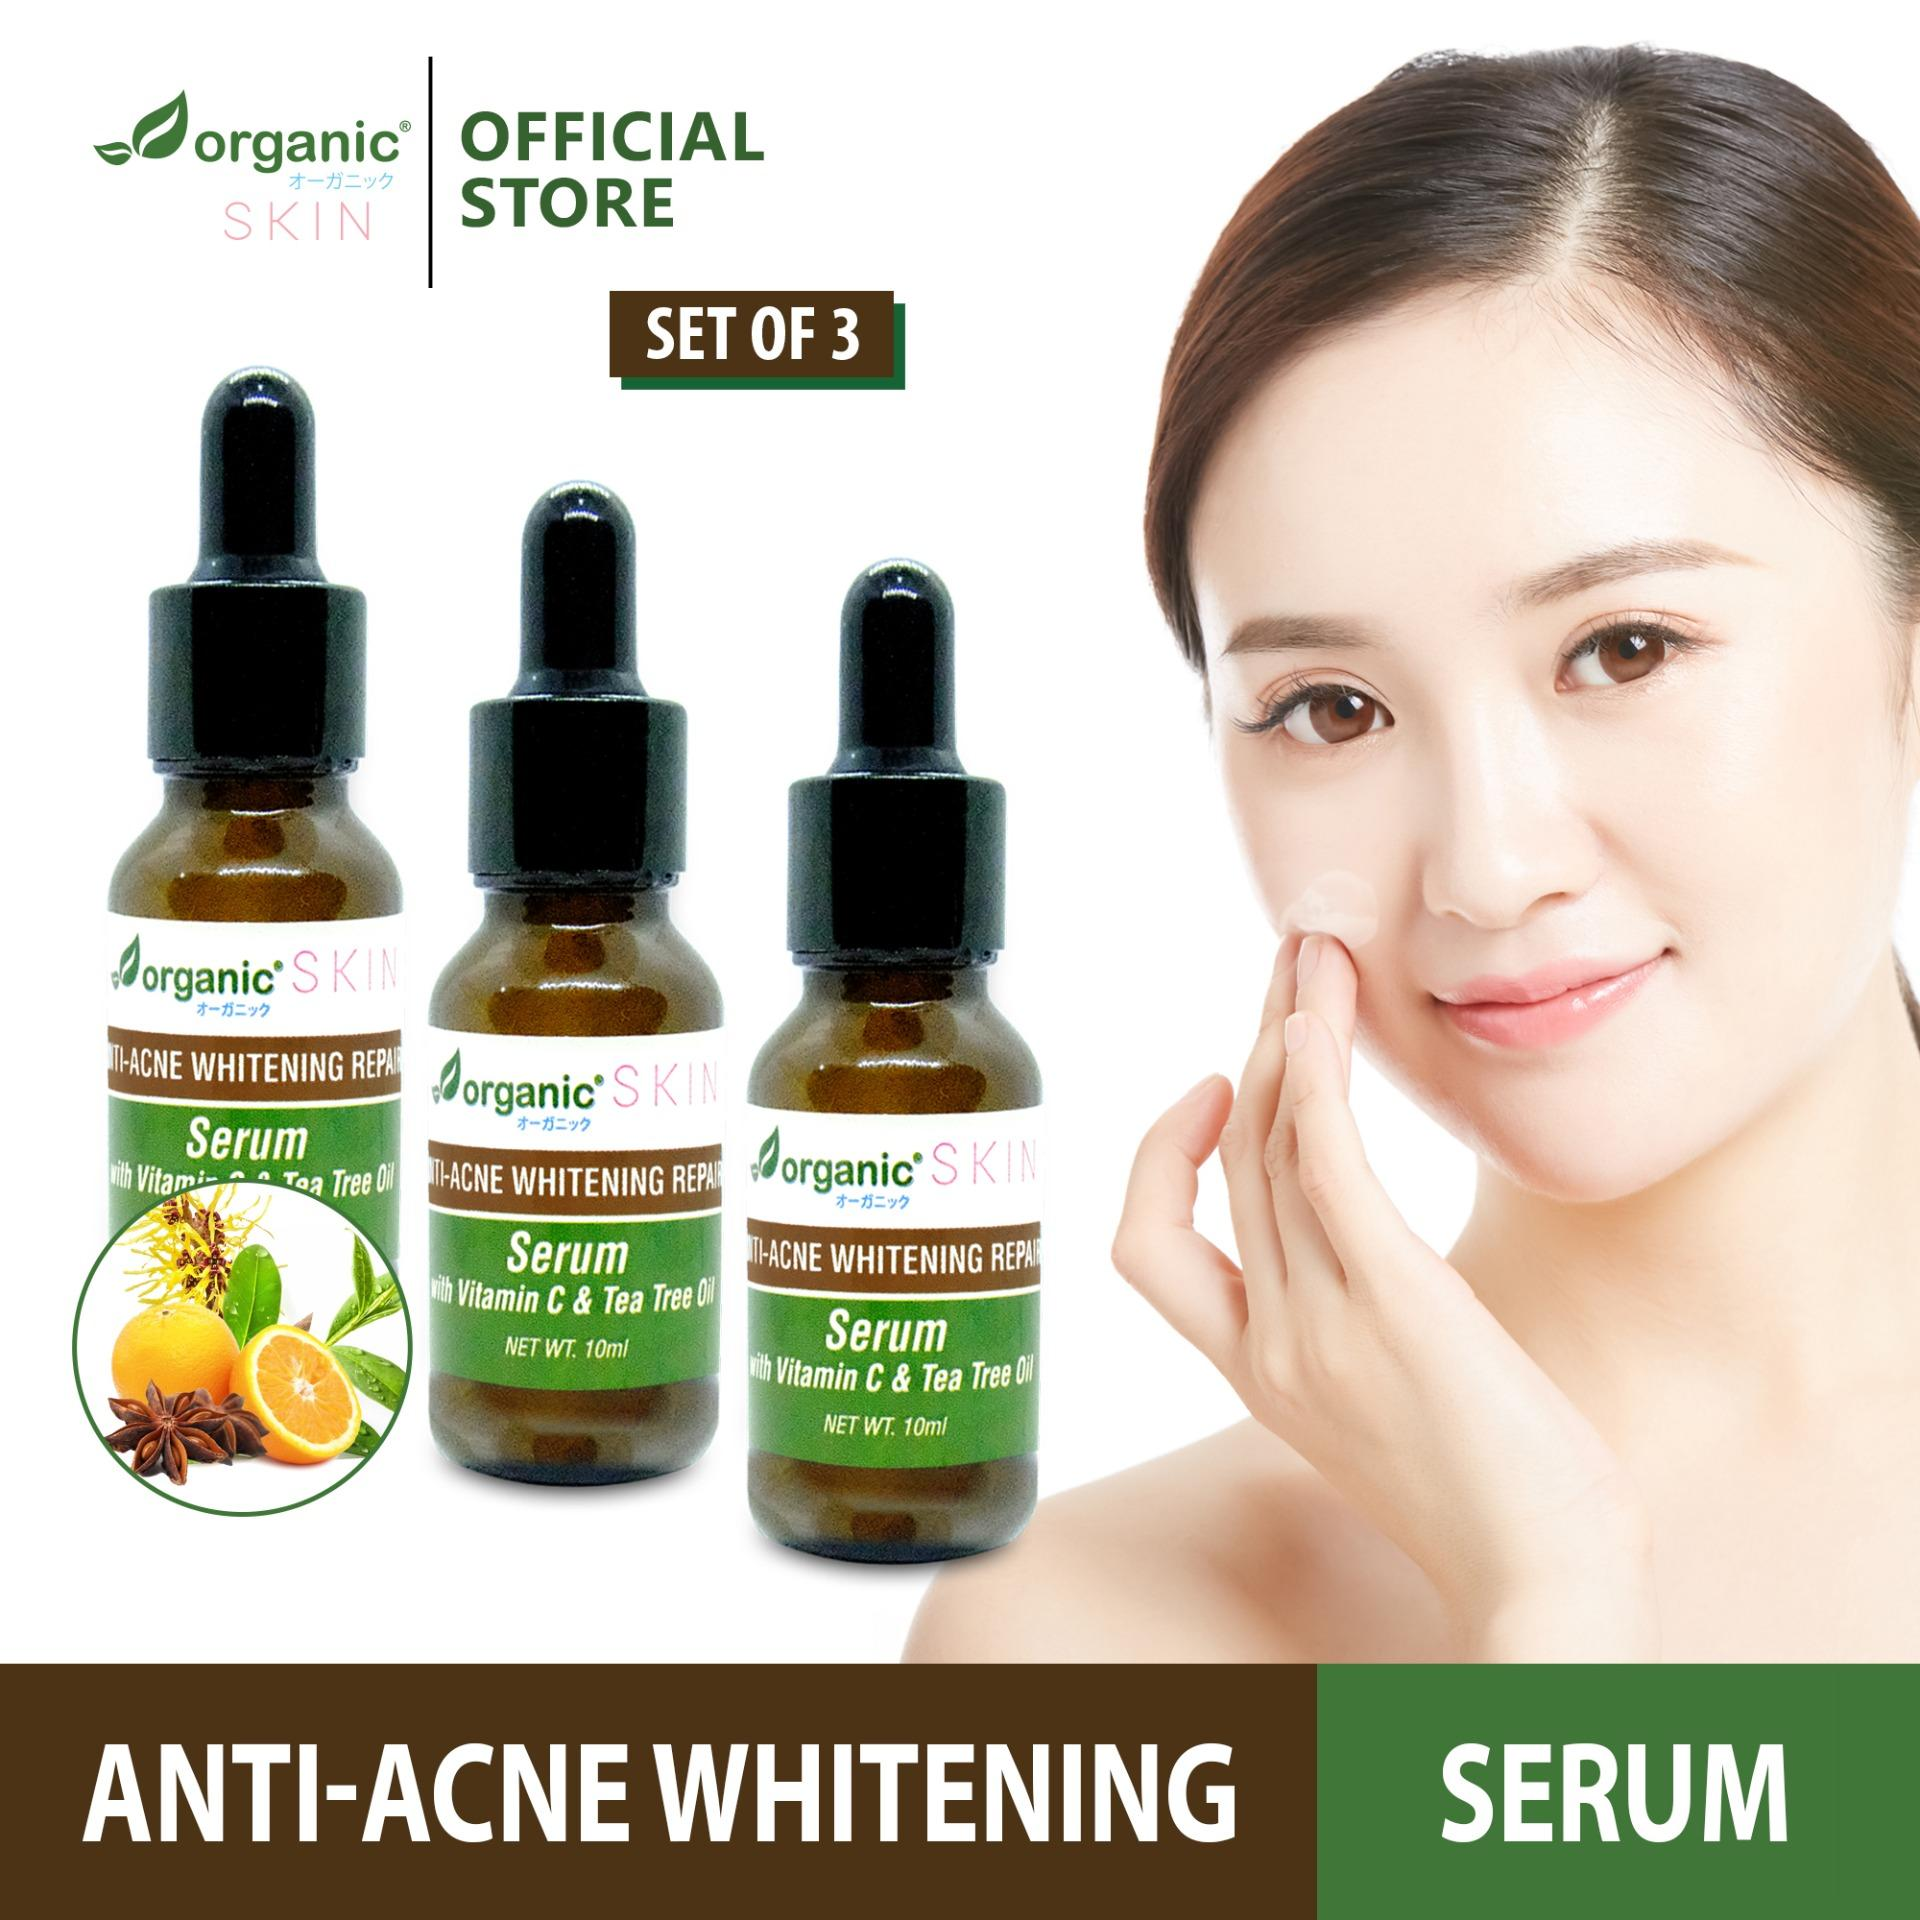 Organic Skin Japan AntiAcne Whitening Repair Serum with Vitamin C & Tea  Tree Oil (set of 3, 10ml each) face serum faceserum anti-acne anti acne